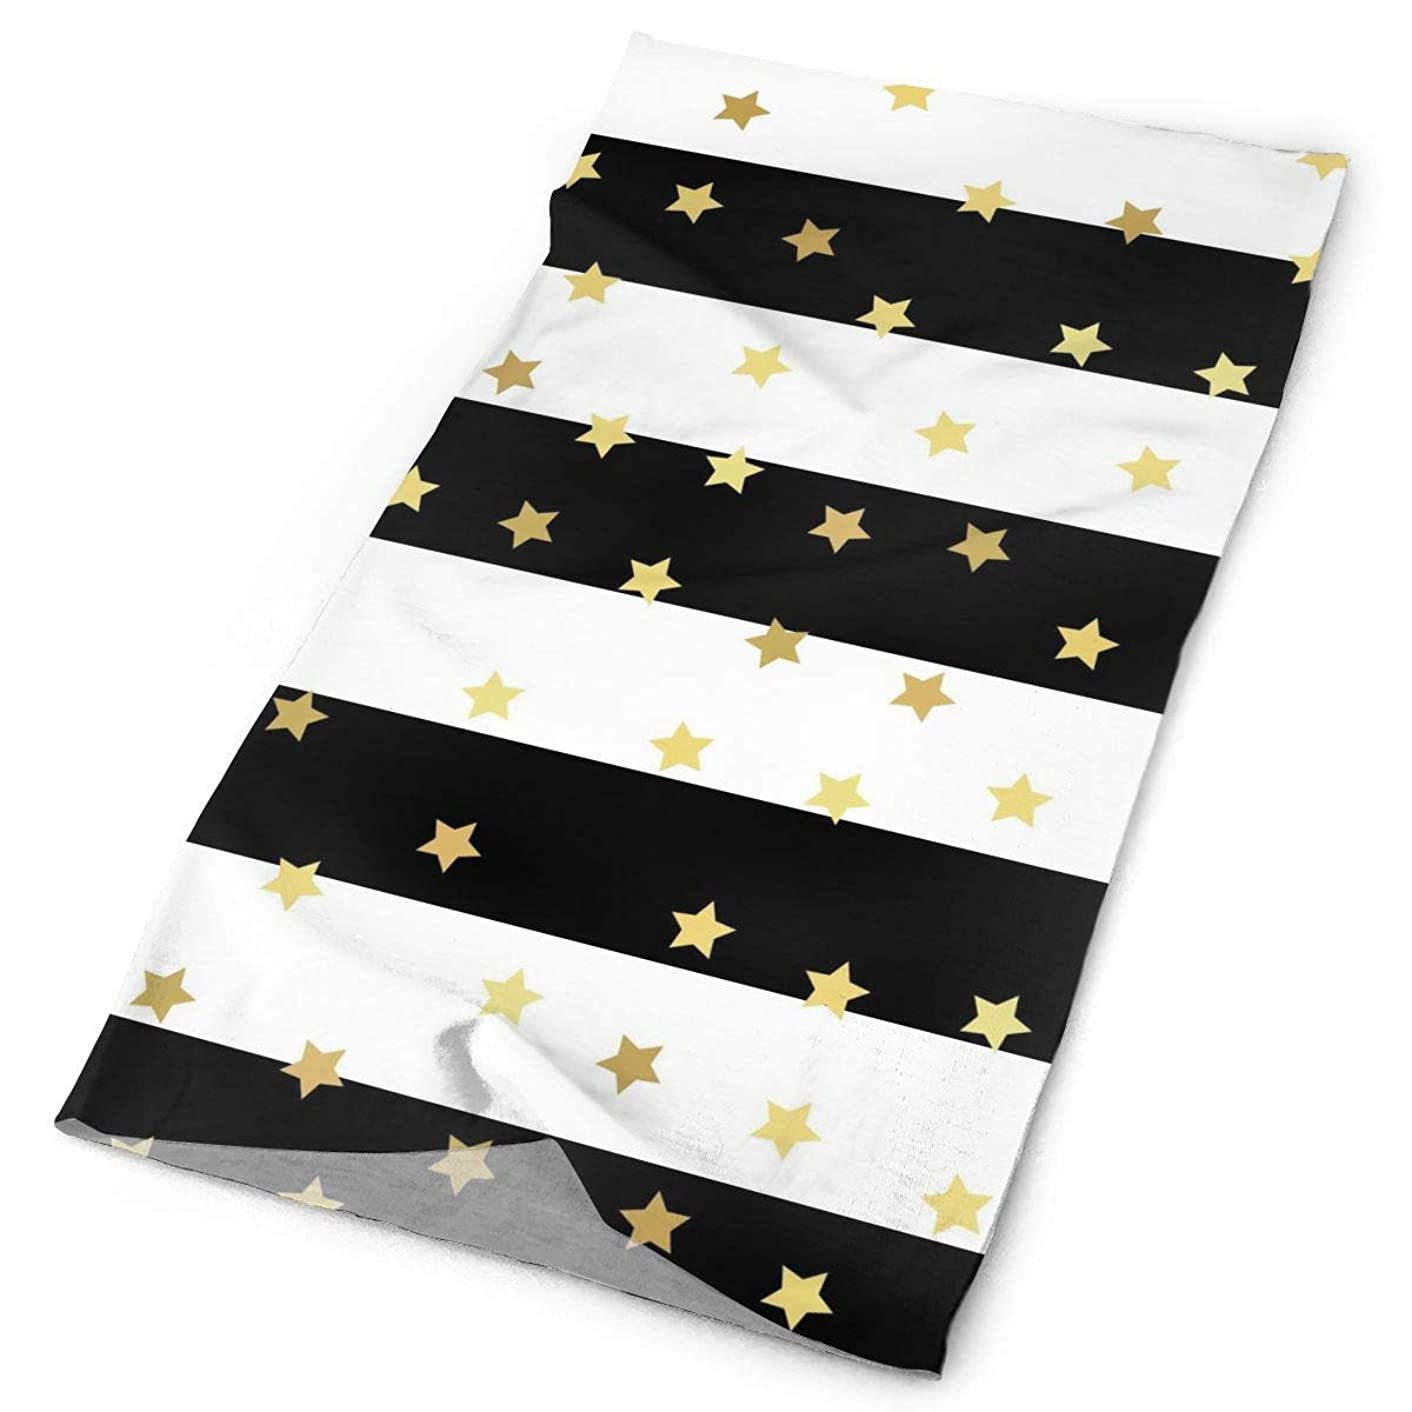 Black and Gold Stars Original Headband with Multi-Function Sports and Leisure Headwear UV Protection Sports Neck, Sweat-Absorbent Microfiber Running, Yoga, Hiking